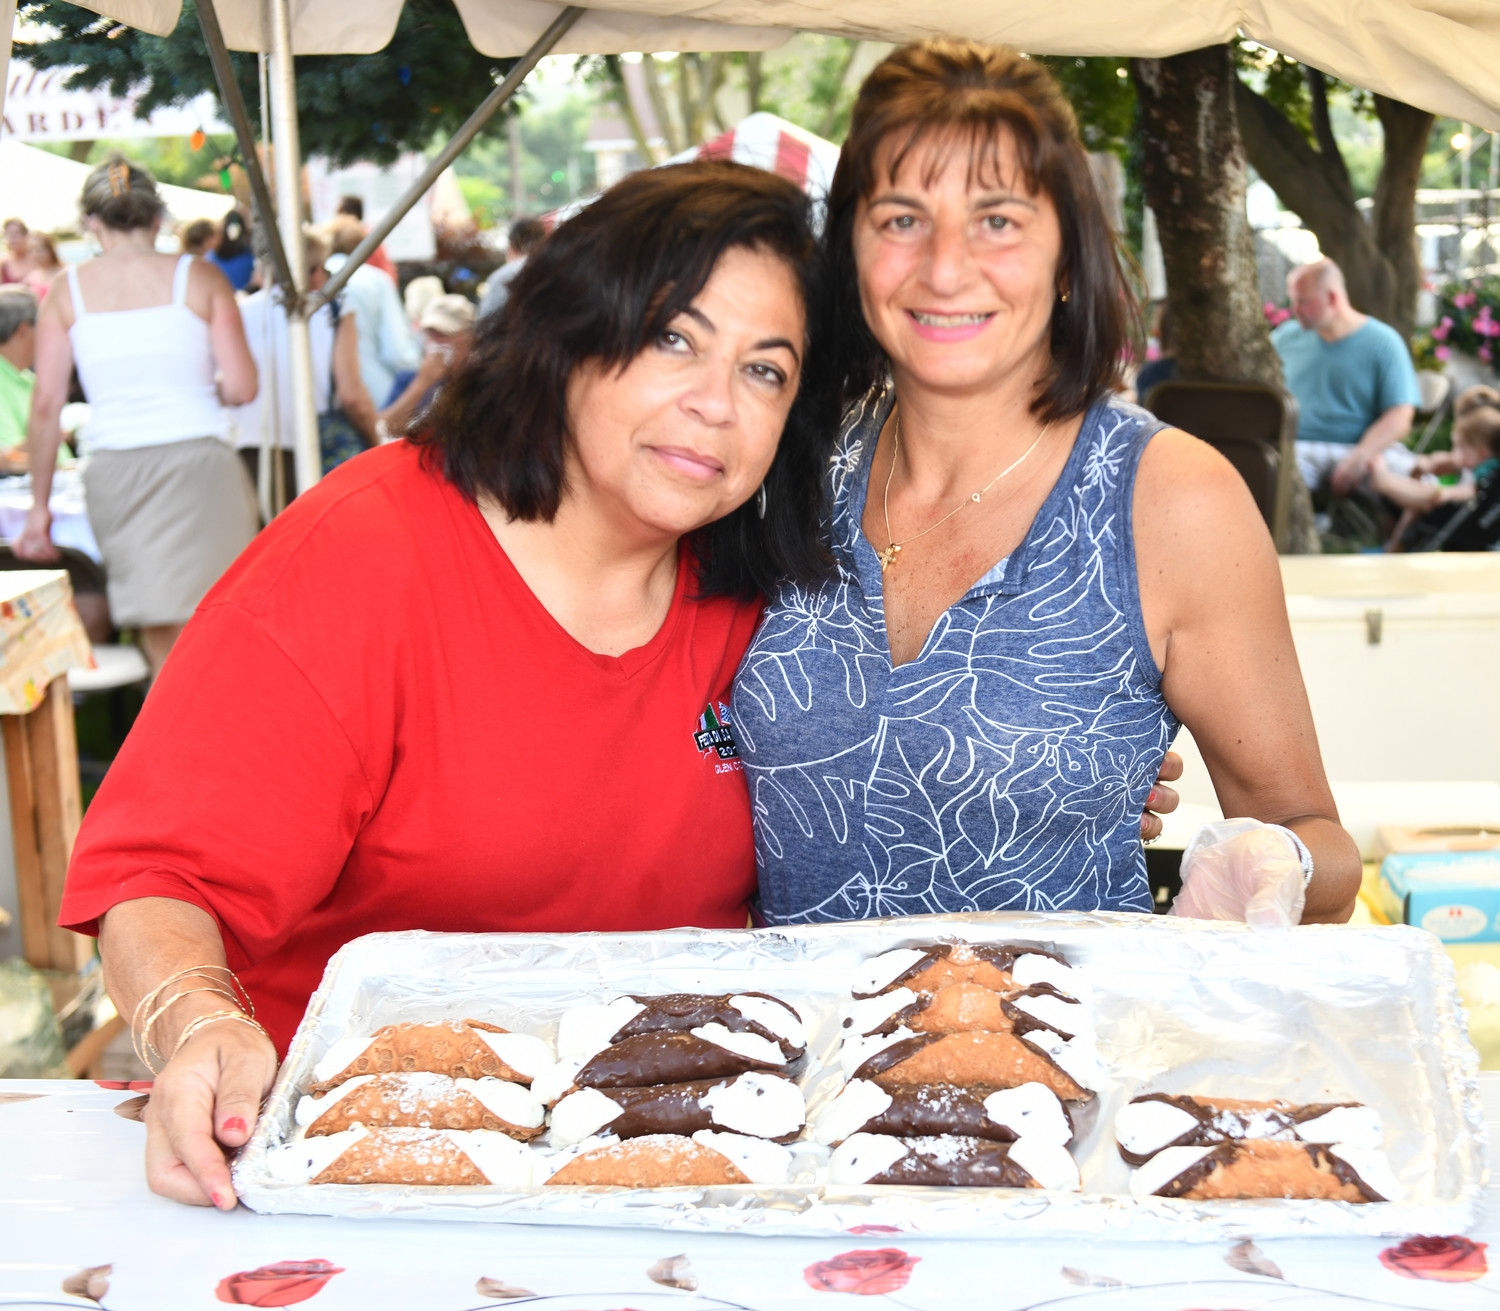 """Canolis, anyone?"" Maria Roberto and Francine Santoro, far left, asked the crowd."